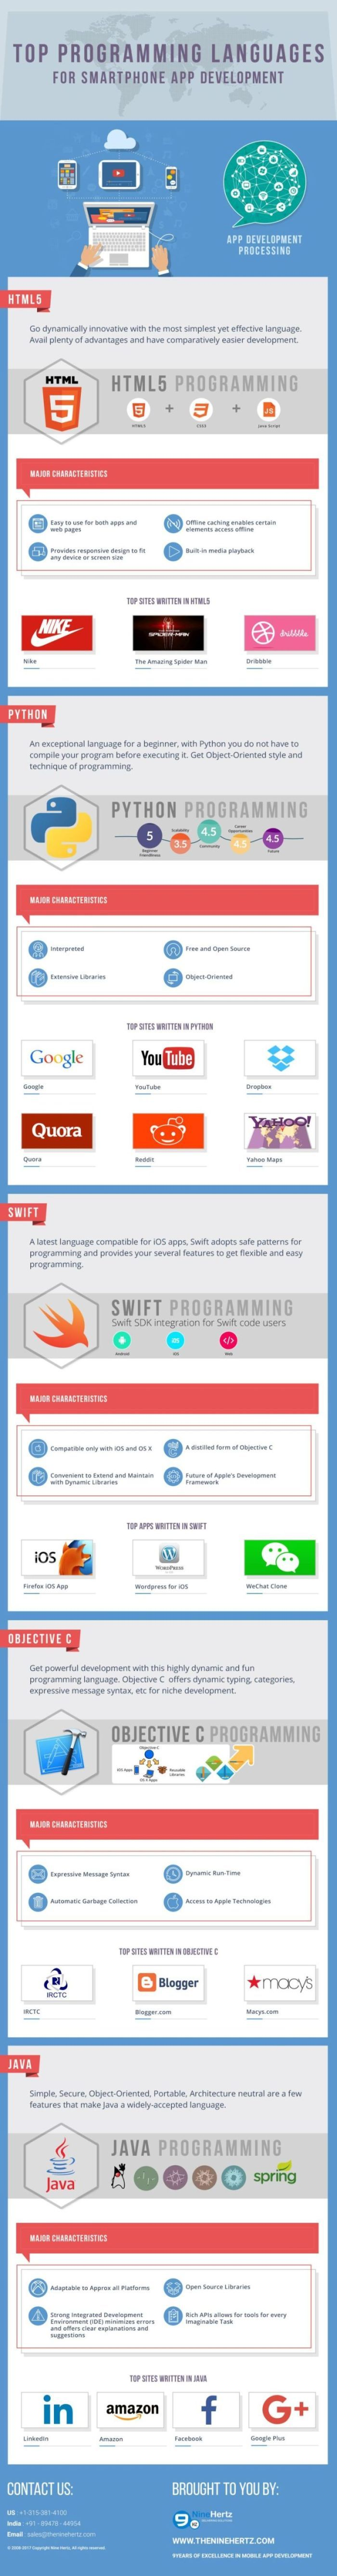 Latest Programming Languages For Application Developers Infographic